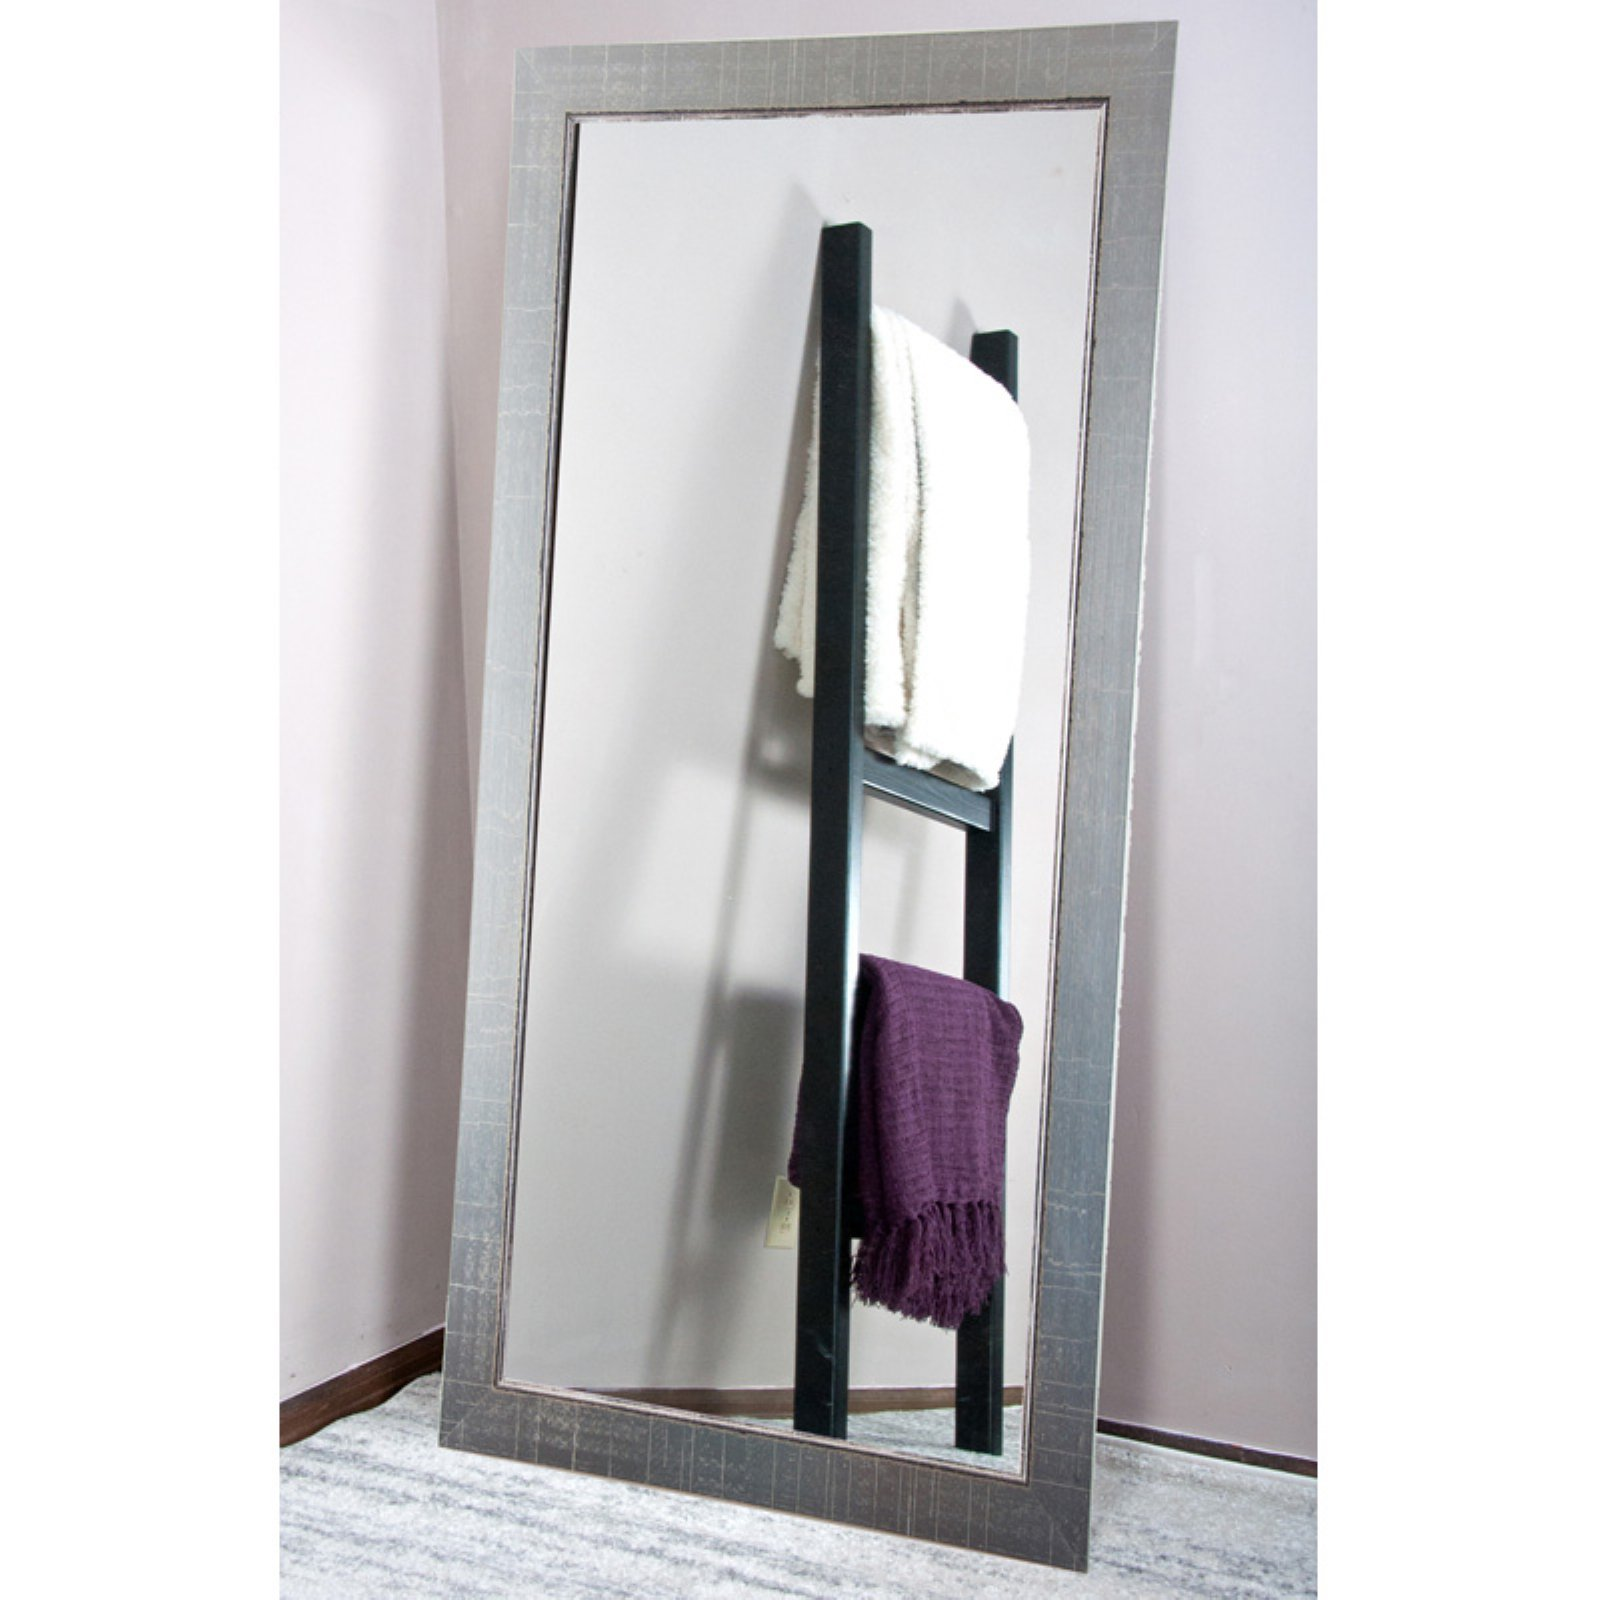 BrandtWorks Silver Vintage Tall Vanity Floor Mirror 31.5W x 65H in. by Brandt Works LLC